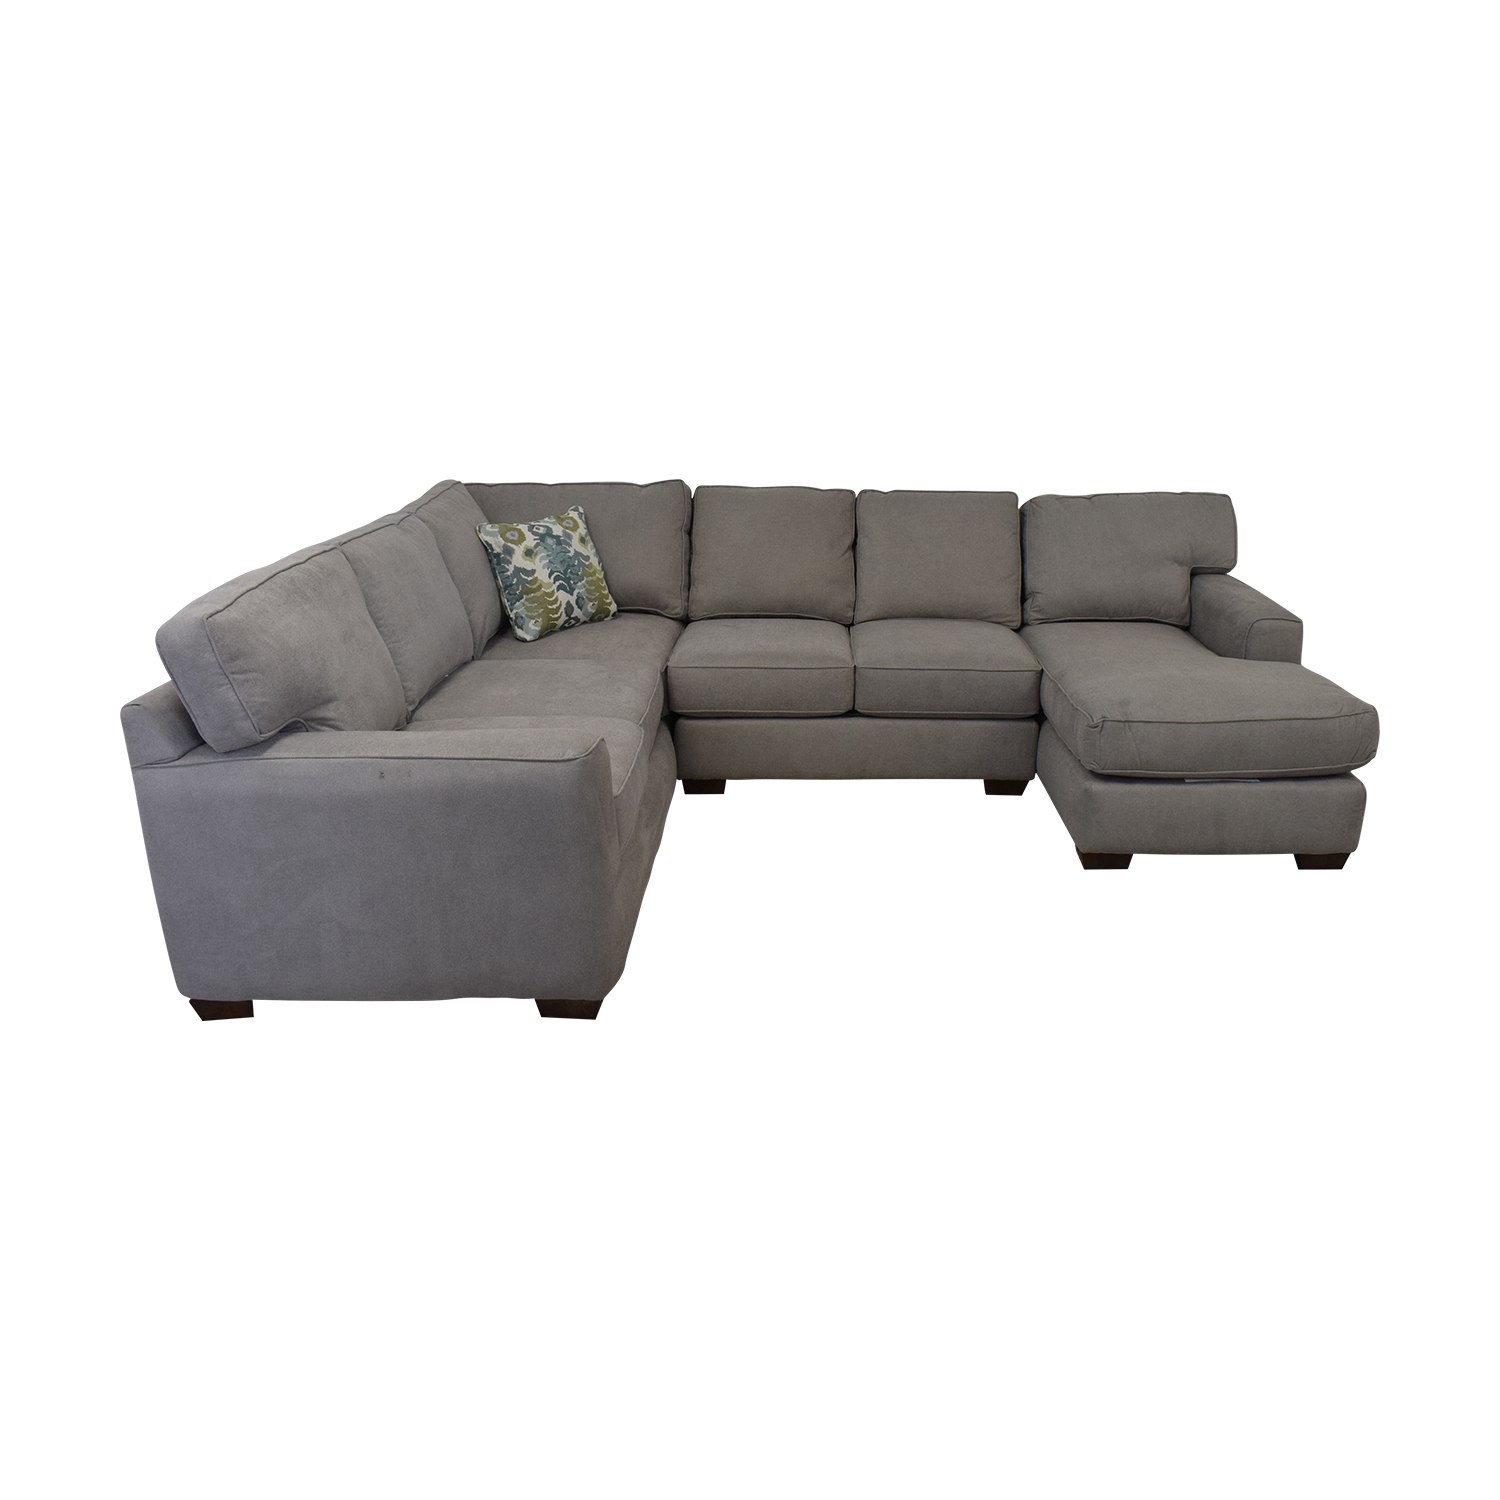 Klaussener Abbott Three-Piece Chaise Sectional Sofa Klaussner